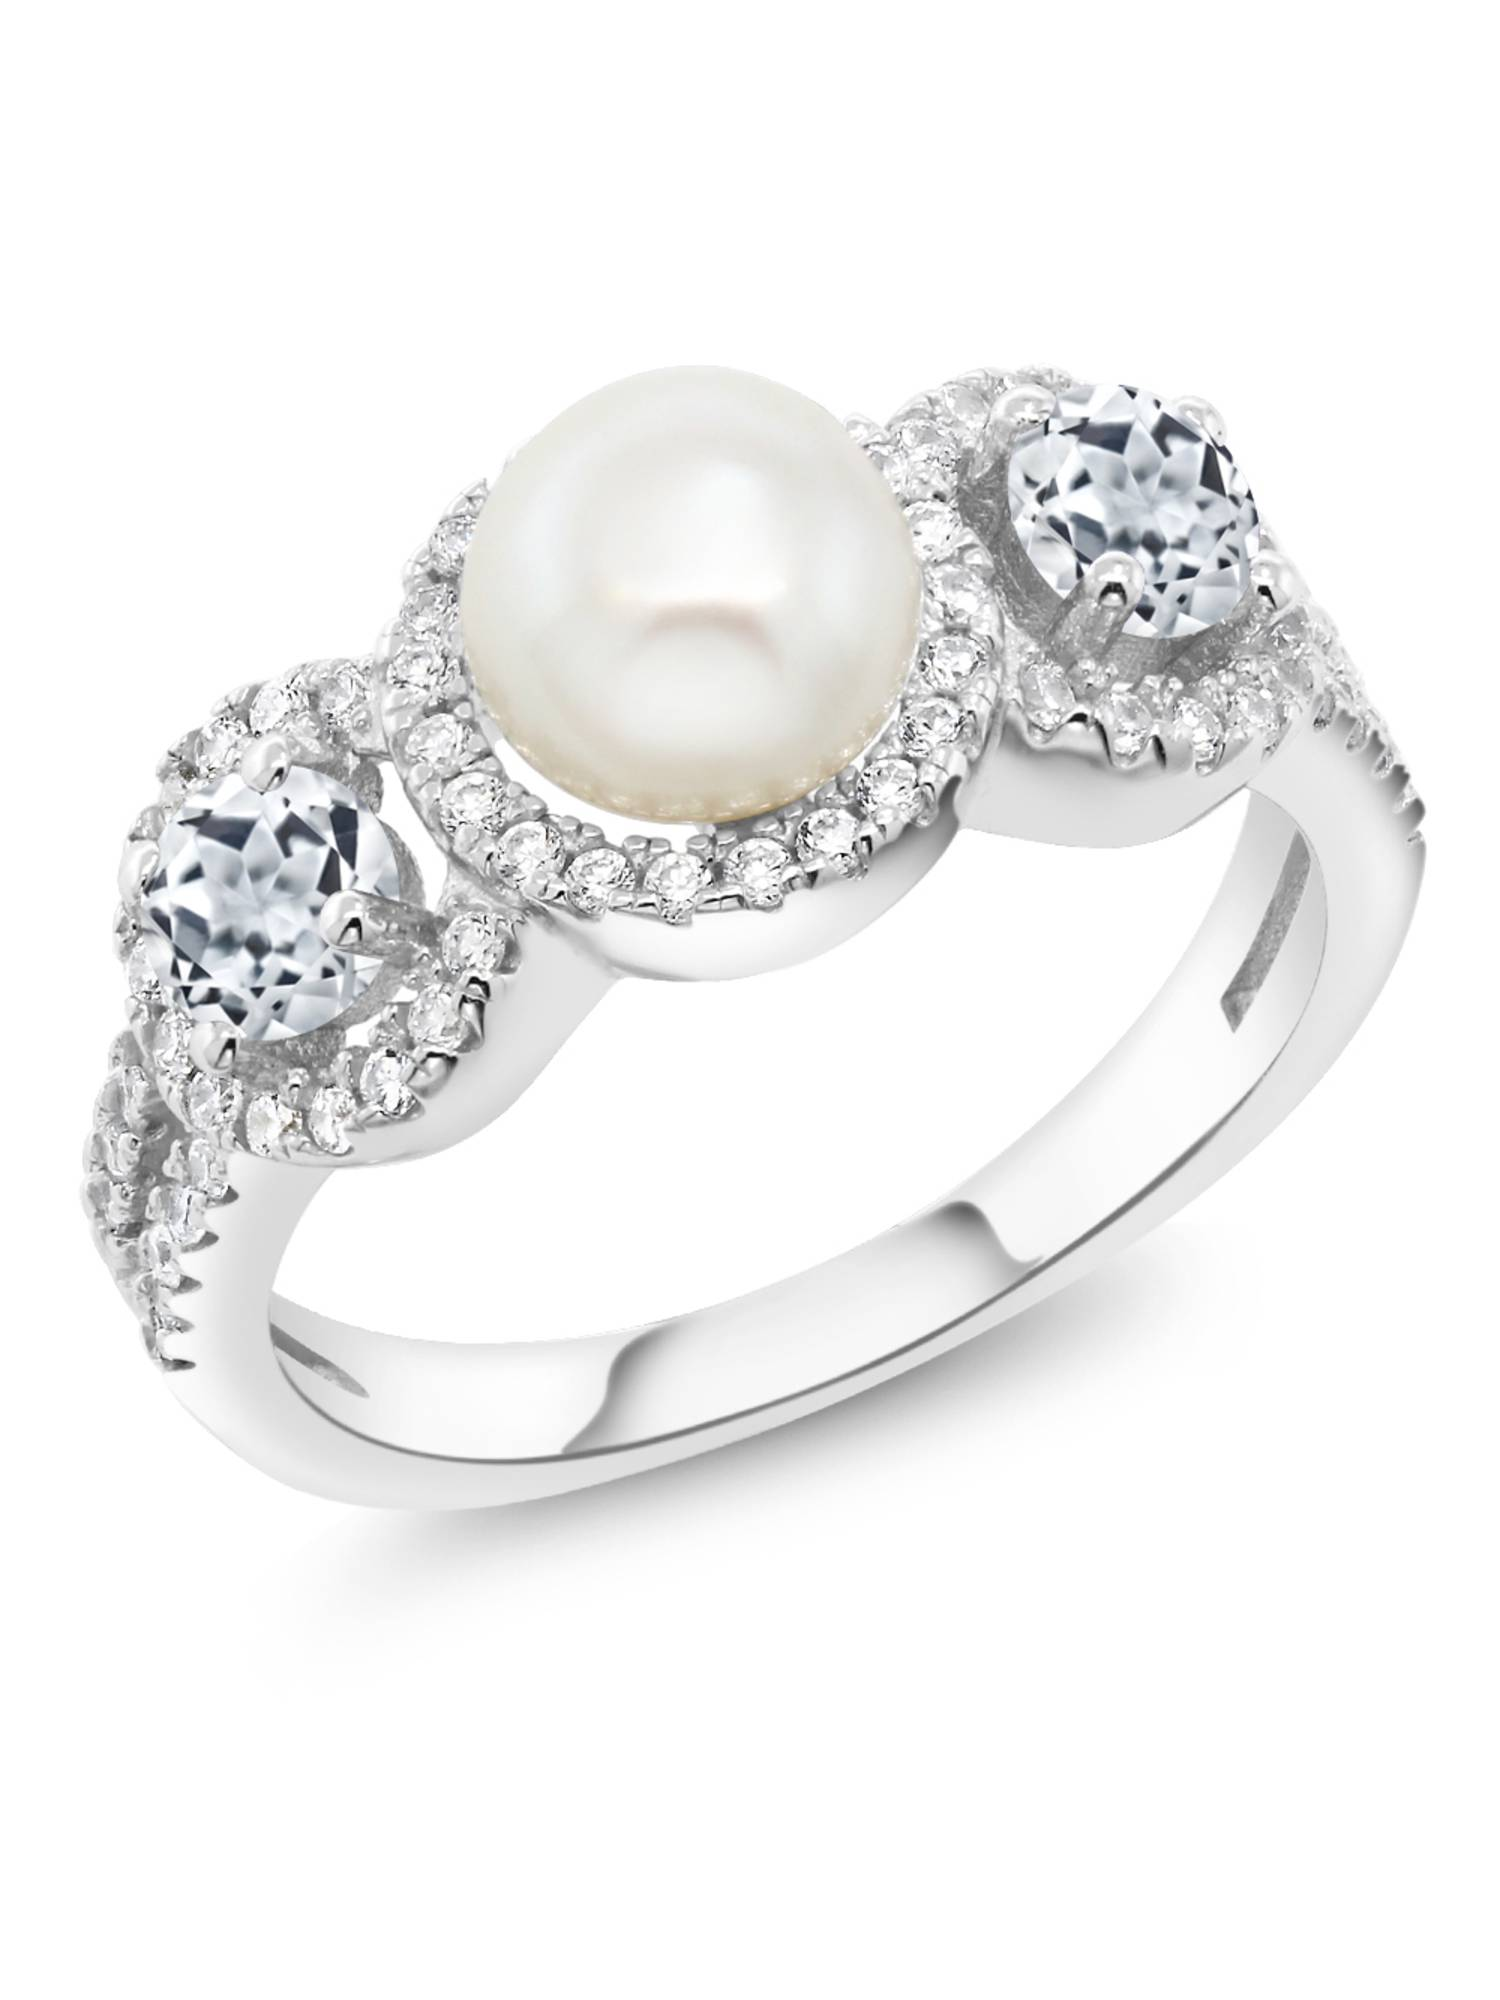 1.46 Ct Round Cultured Freshwater Pearl White Topaz 925 Sterling Silver Ring